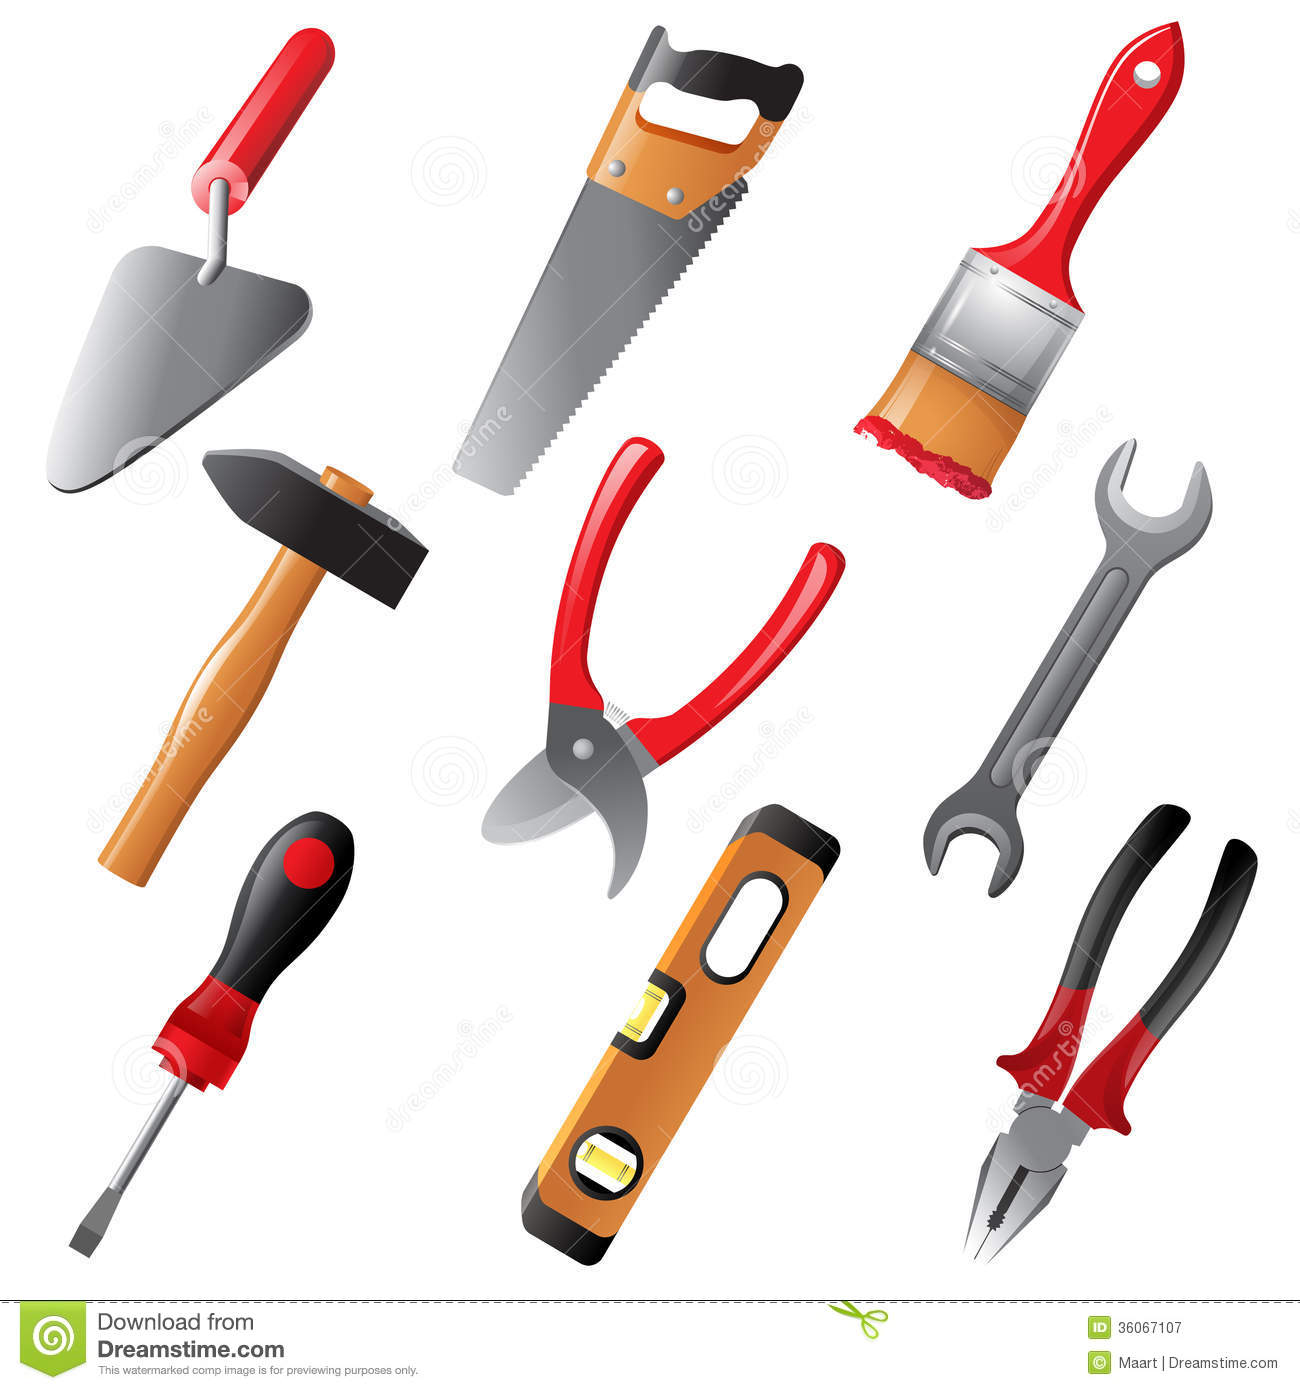 Tool clipart work tool. Picture of tools free